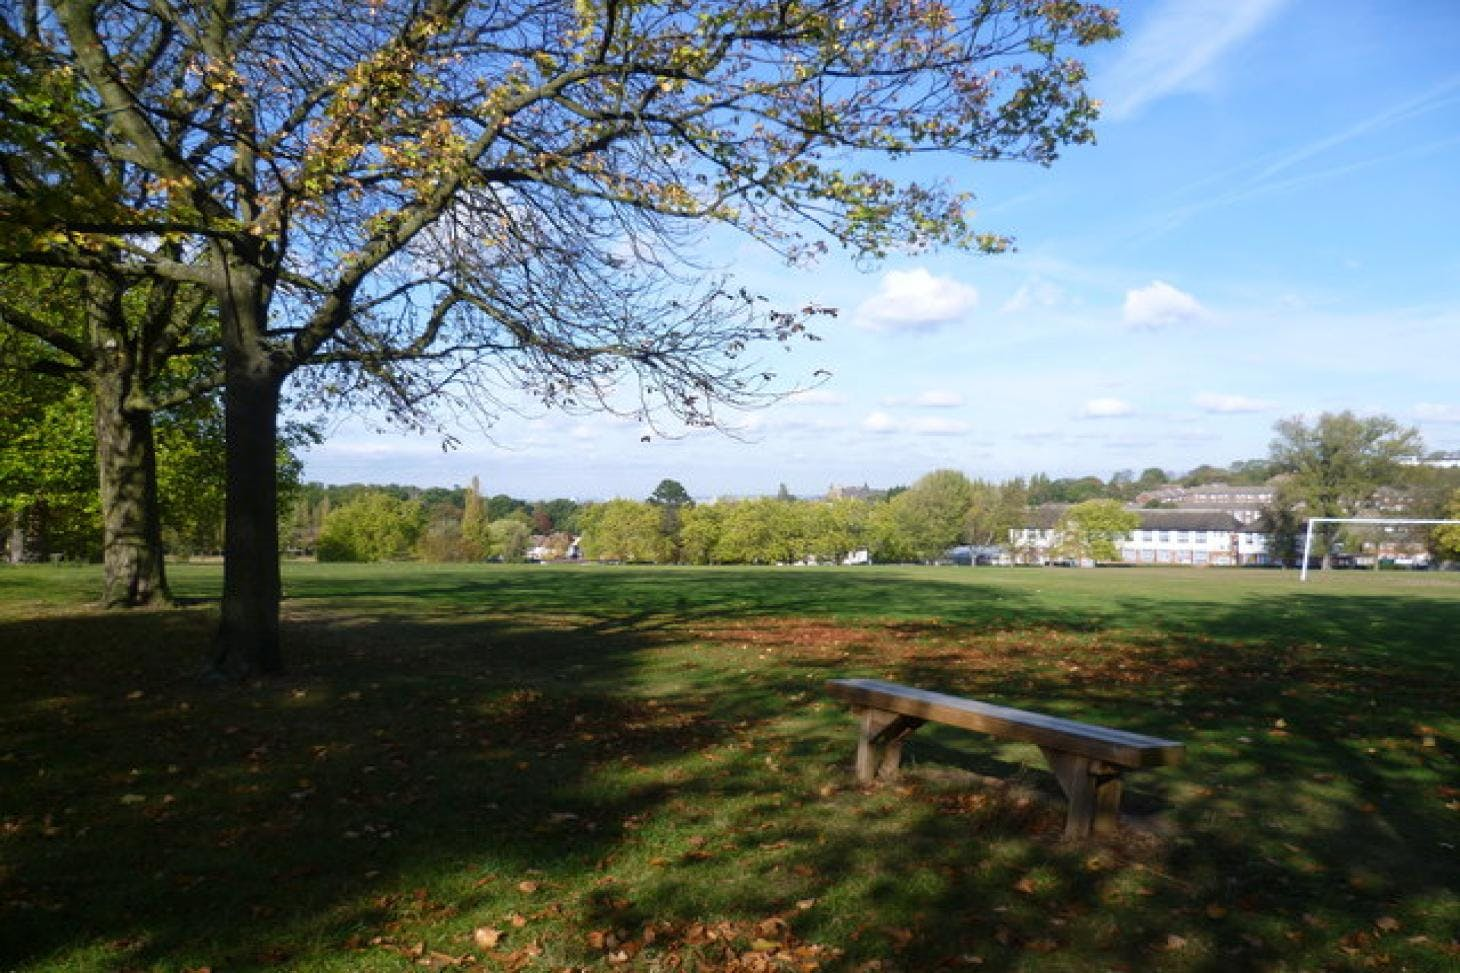 Upper Norwood Recreation Ground 5 a side   Grass football pitch